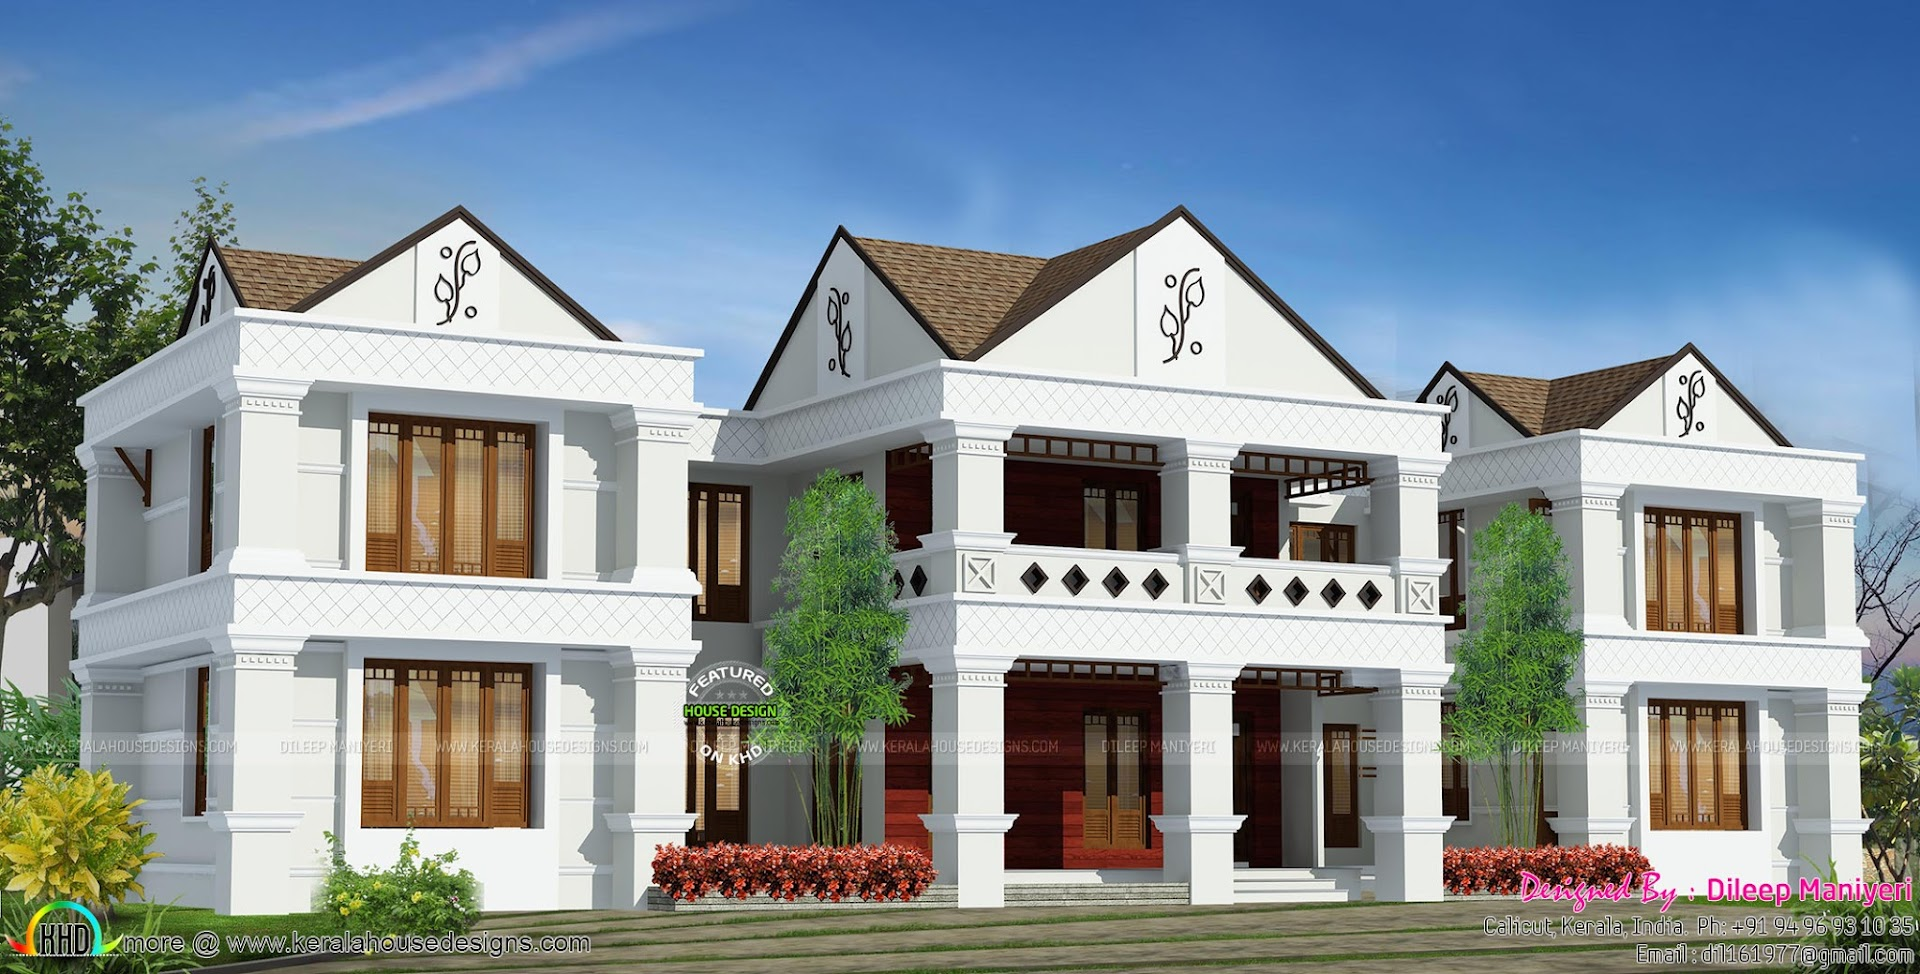 Arabic style house plan in India | Kerala home design | Bloglovin' on roman house designs, greek house designs, ranch house designs, cartoon house designs, outdoor house designs, pakistani house designs, american house designs, spanish house designs, polish house designs, german house designs, mexican house designs, paint house designs, french house designs, armenian house designs, italian house designs, canadian house designs, english house designs, extreme house designs, japanese house designs, mediterranean house designs,